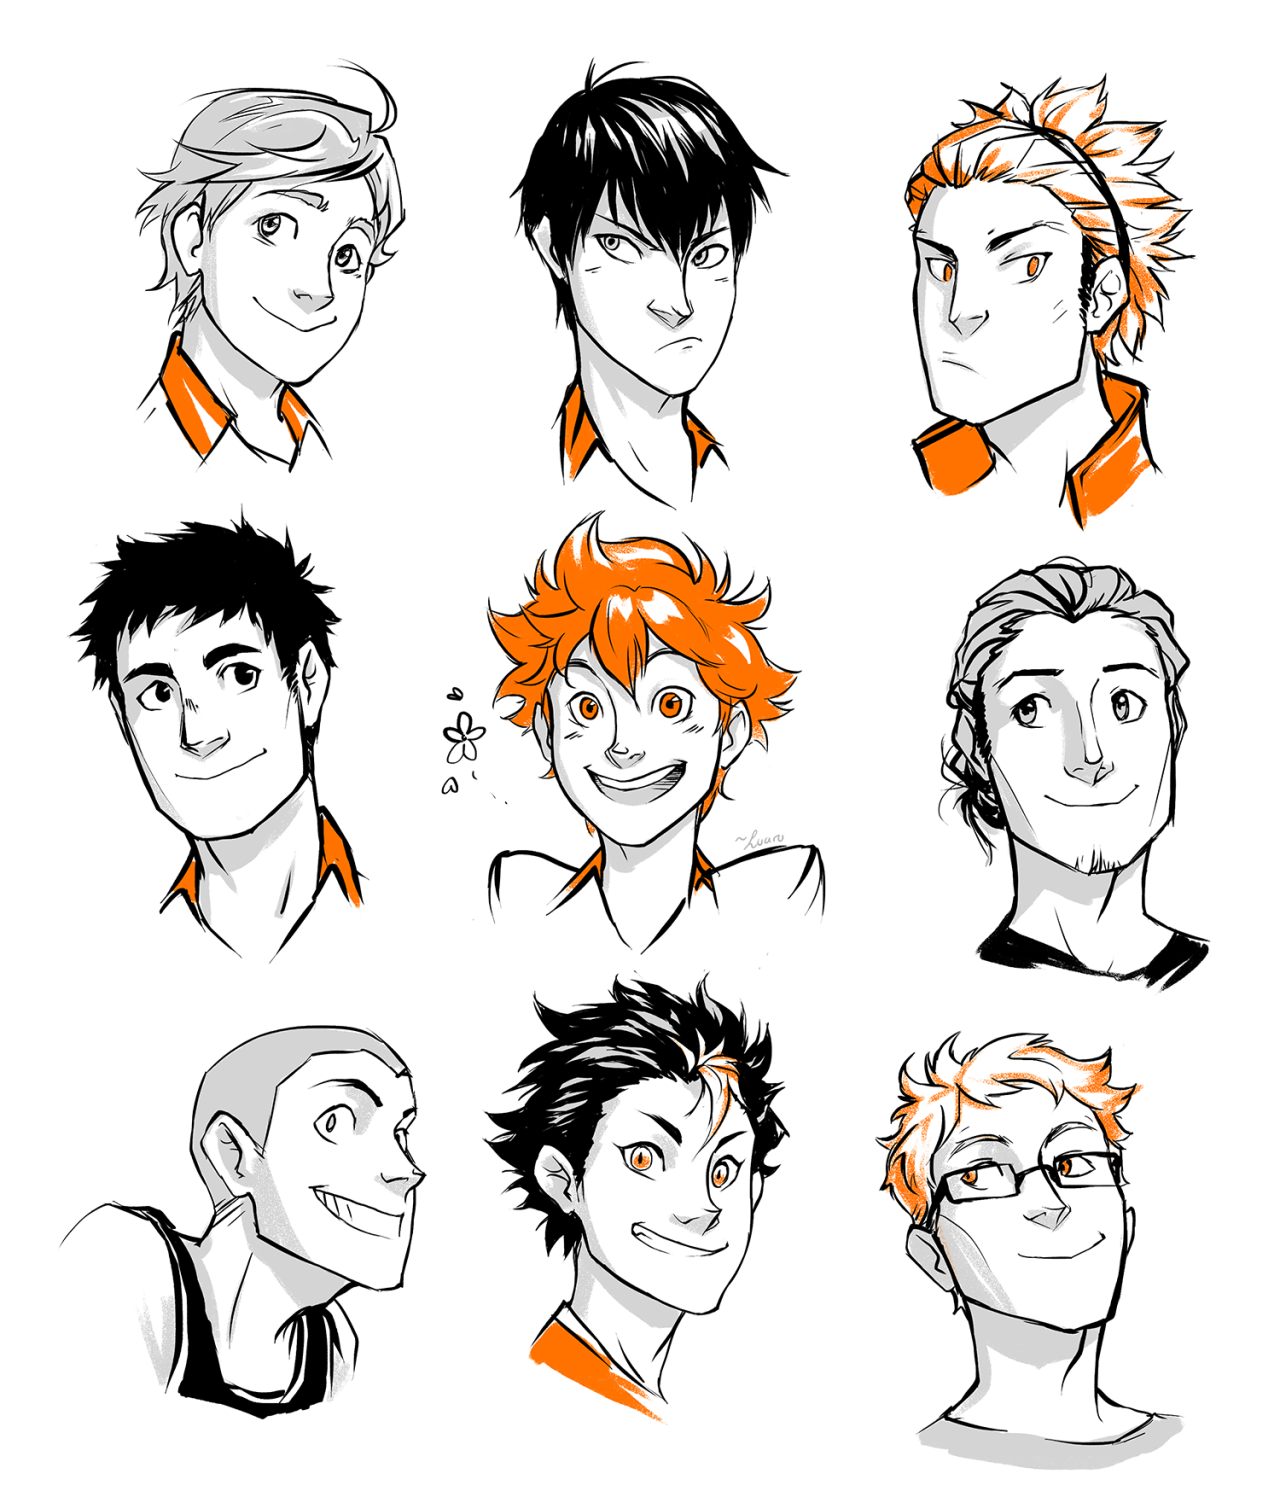 Luaru Woops Sold My Soul To Another Sports Anime Help It S Too Cute I Can T Stop Haikyuu Anime Haikyuu Fanart Sports Anime